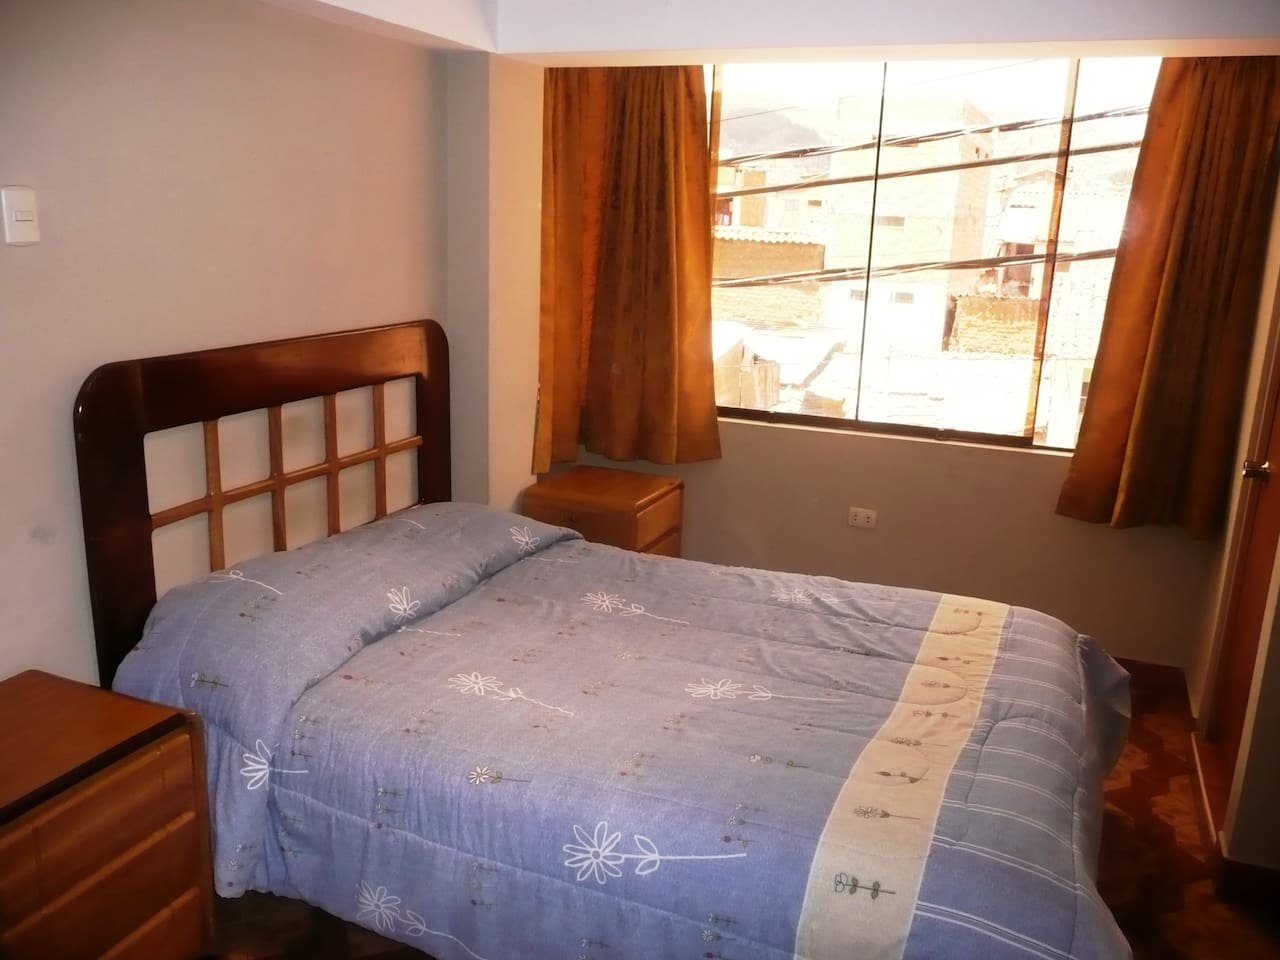 Room with a queen bed, we can also fit 2 single beds or for 3 people 1 single bed + 1 bunk bed / Cuarto principal con Cama Matrimonial, tambien se puede poner 2 camas simples o para 3 personas 1 cama simple + 1 camarote